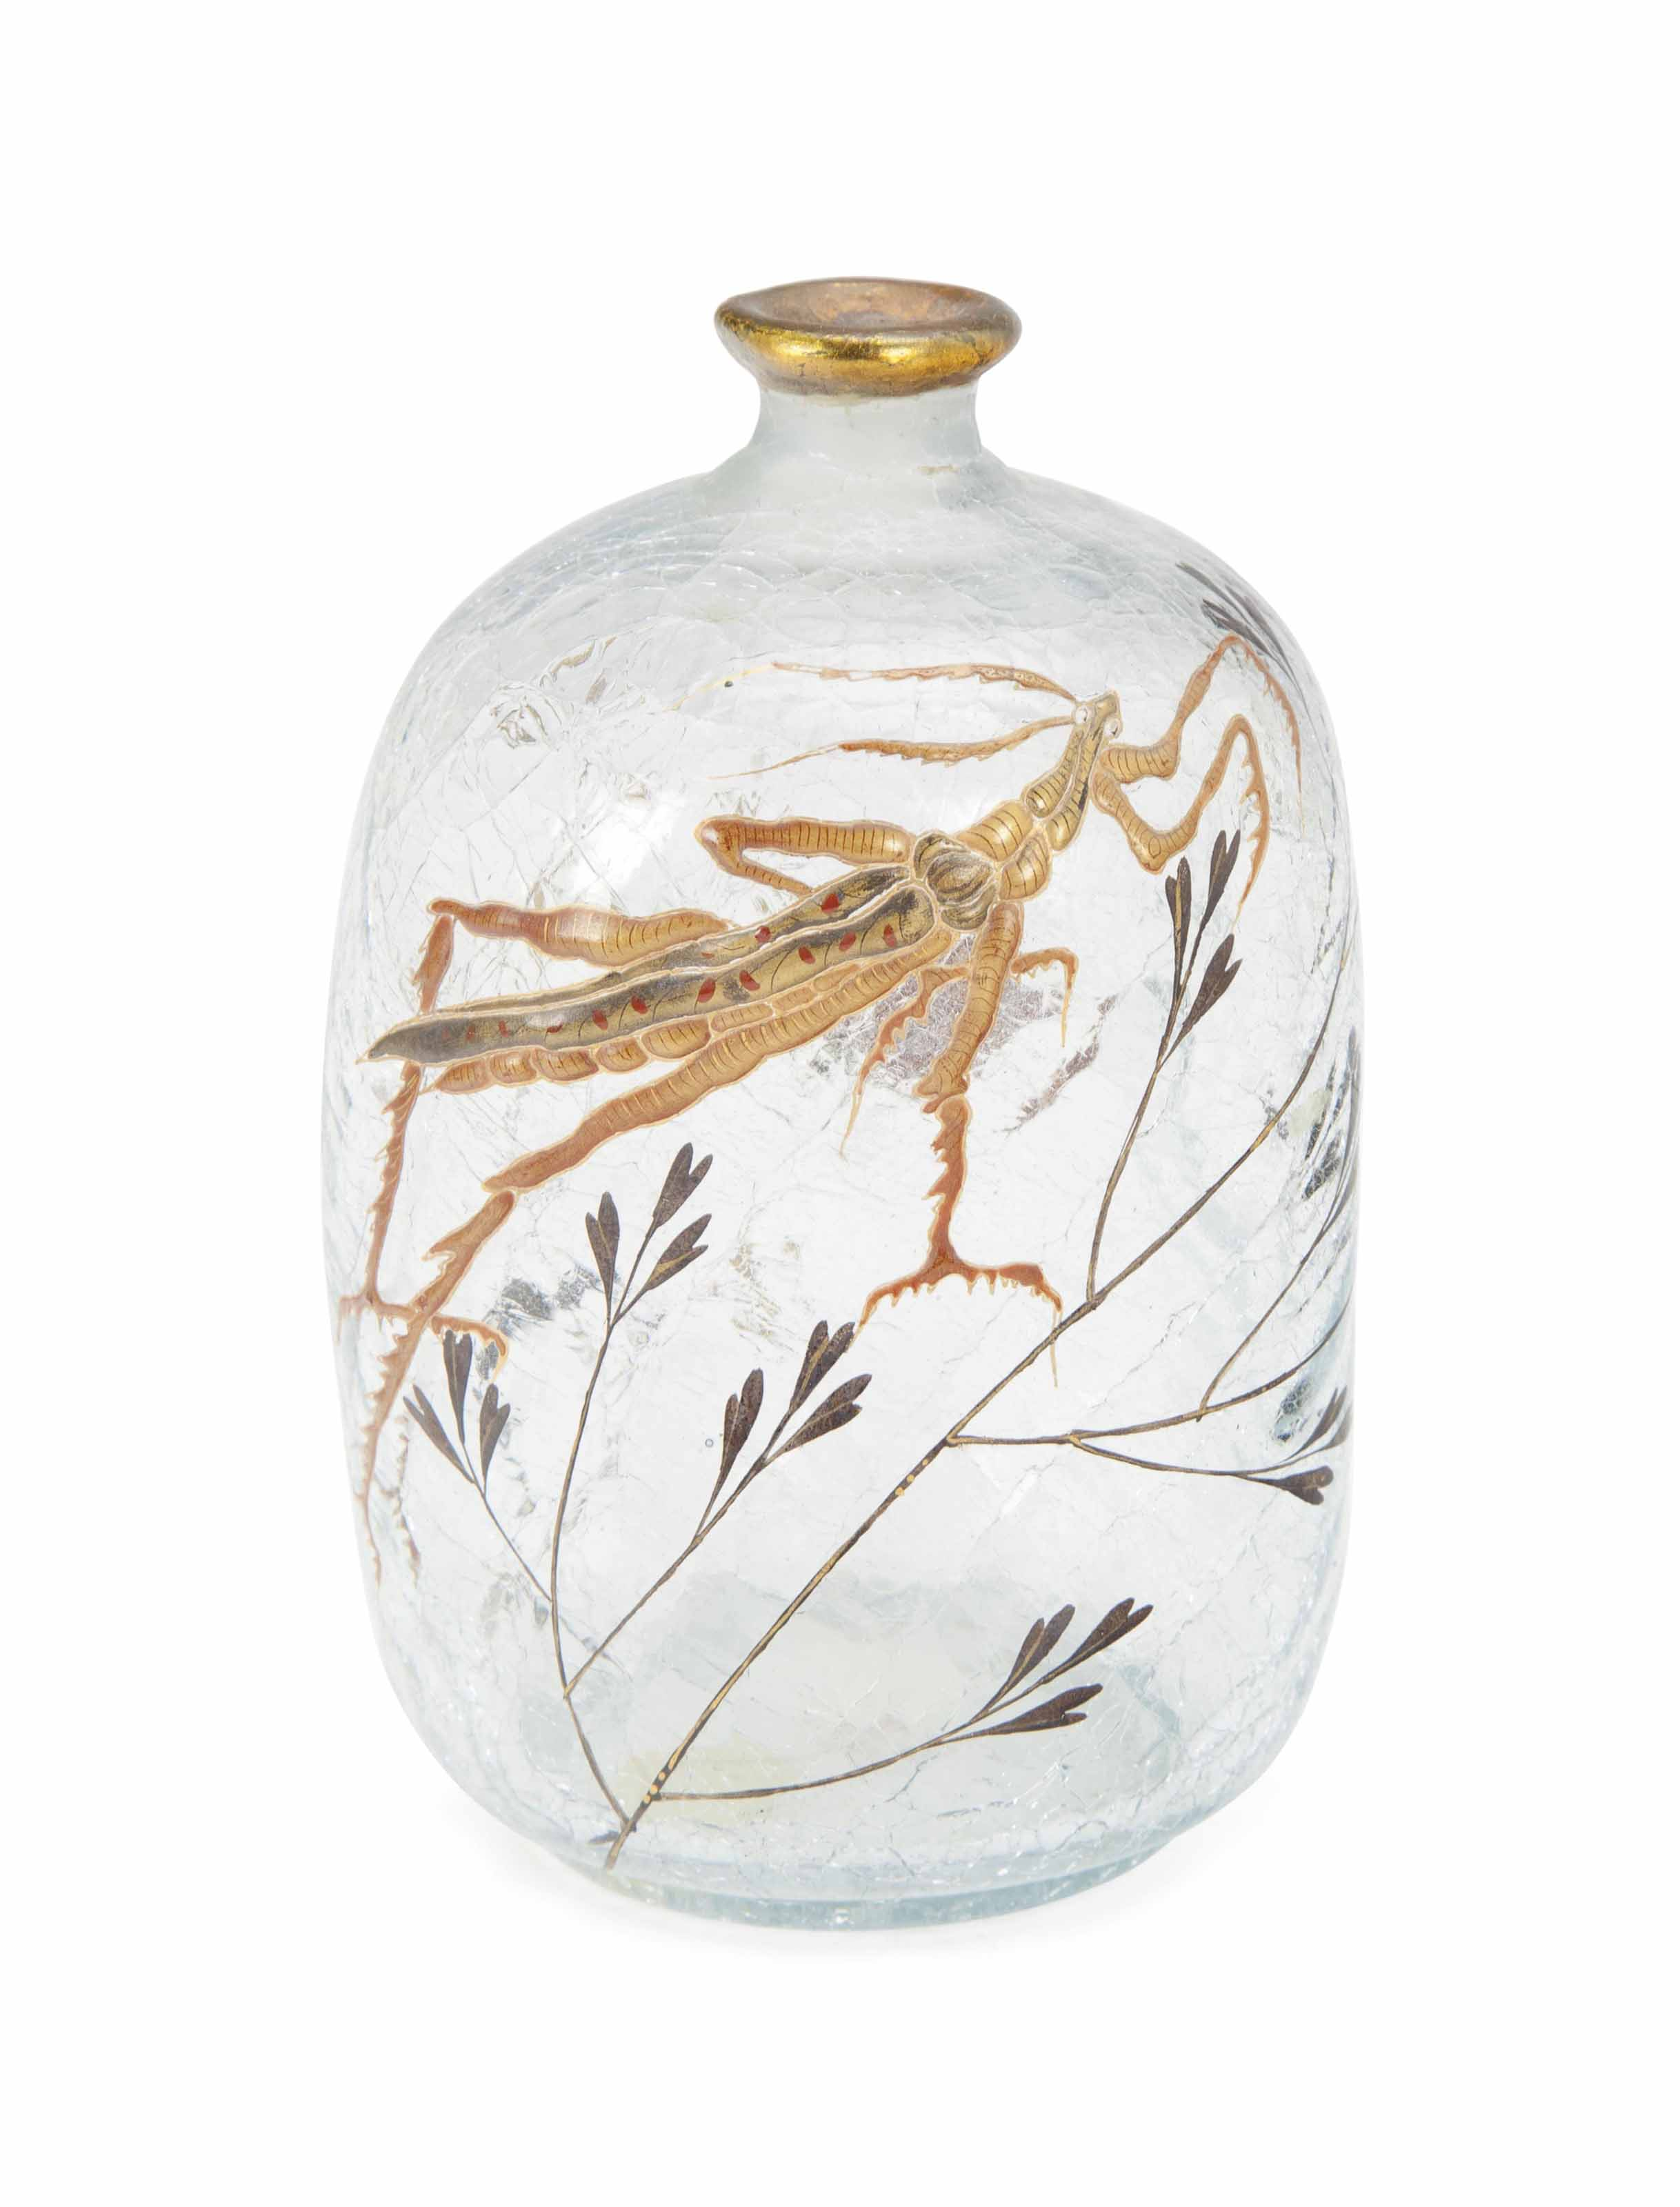 A FRENCH GILT AND ENAMELED GLASS VASE DECORATED WITH A PREYING MANTIS,